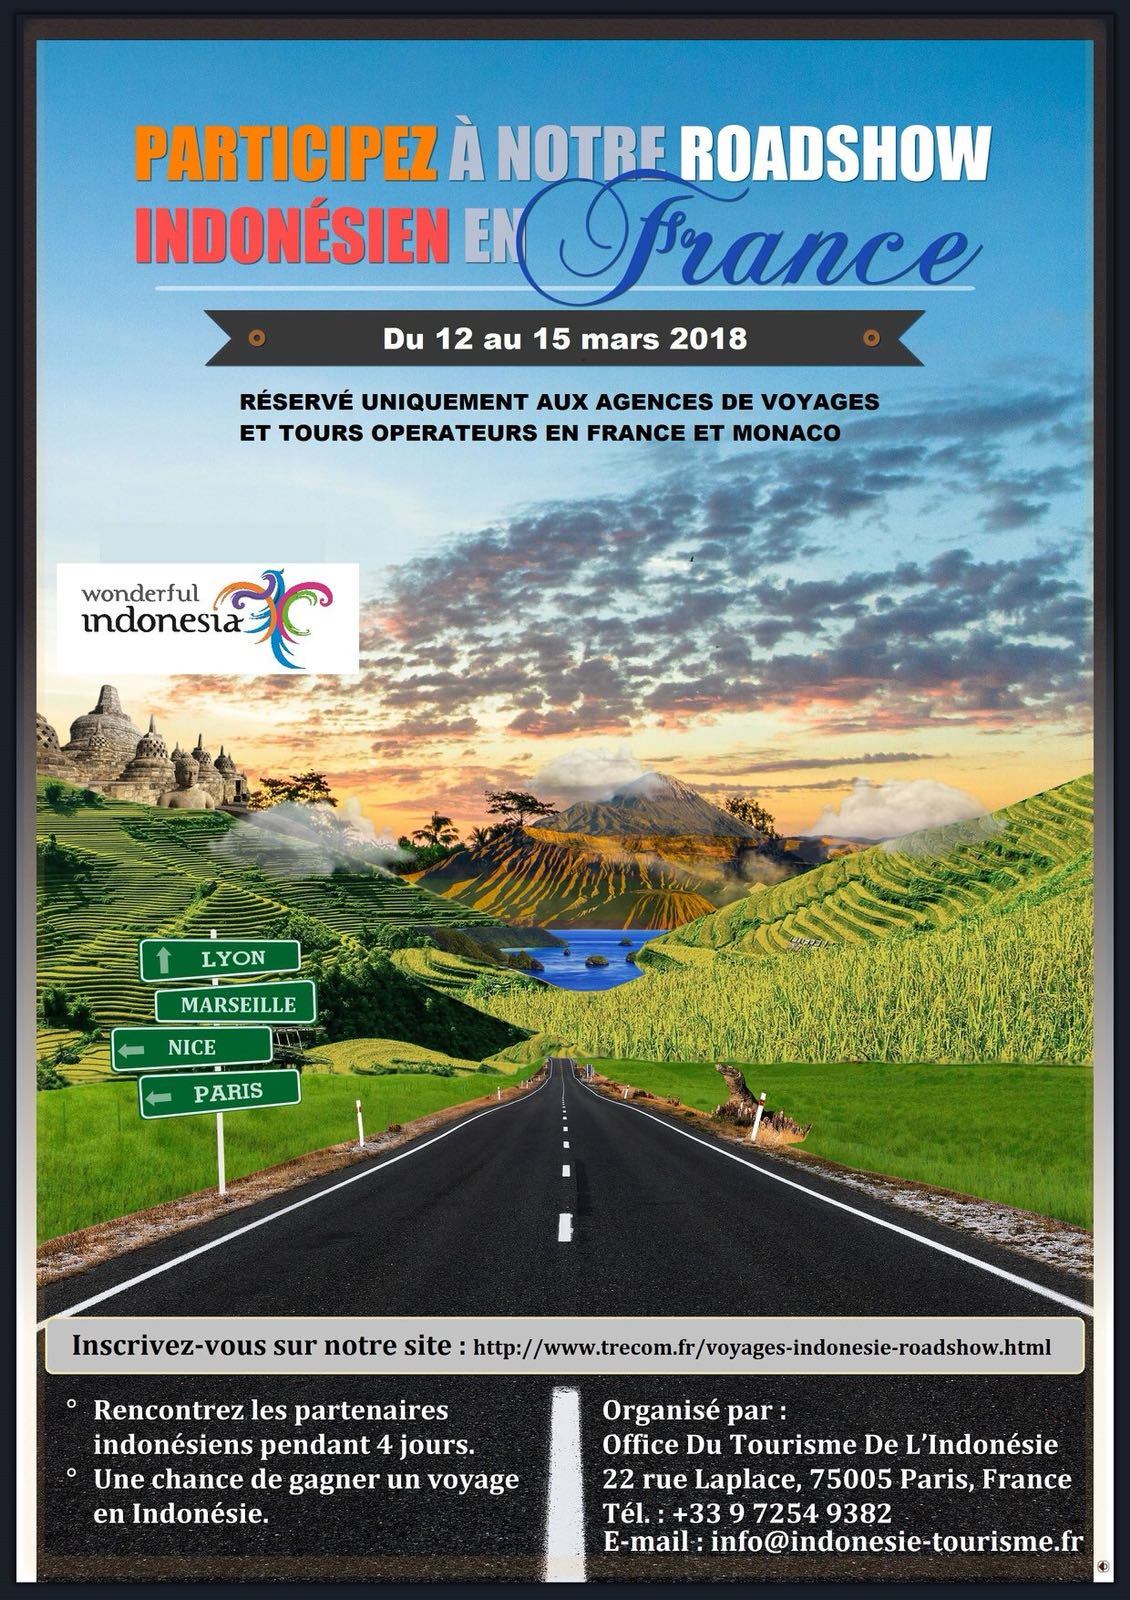 Office Du Tourisme Bali L Indonésie Fait Son Roadshow En France 12 15 Mars 2018 Office